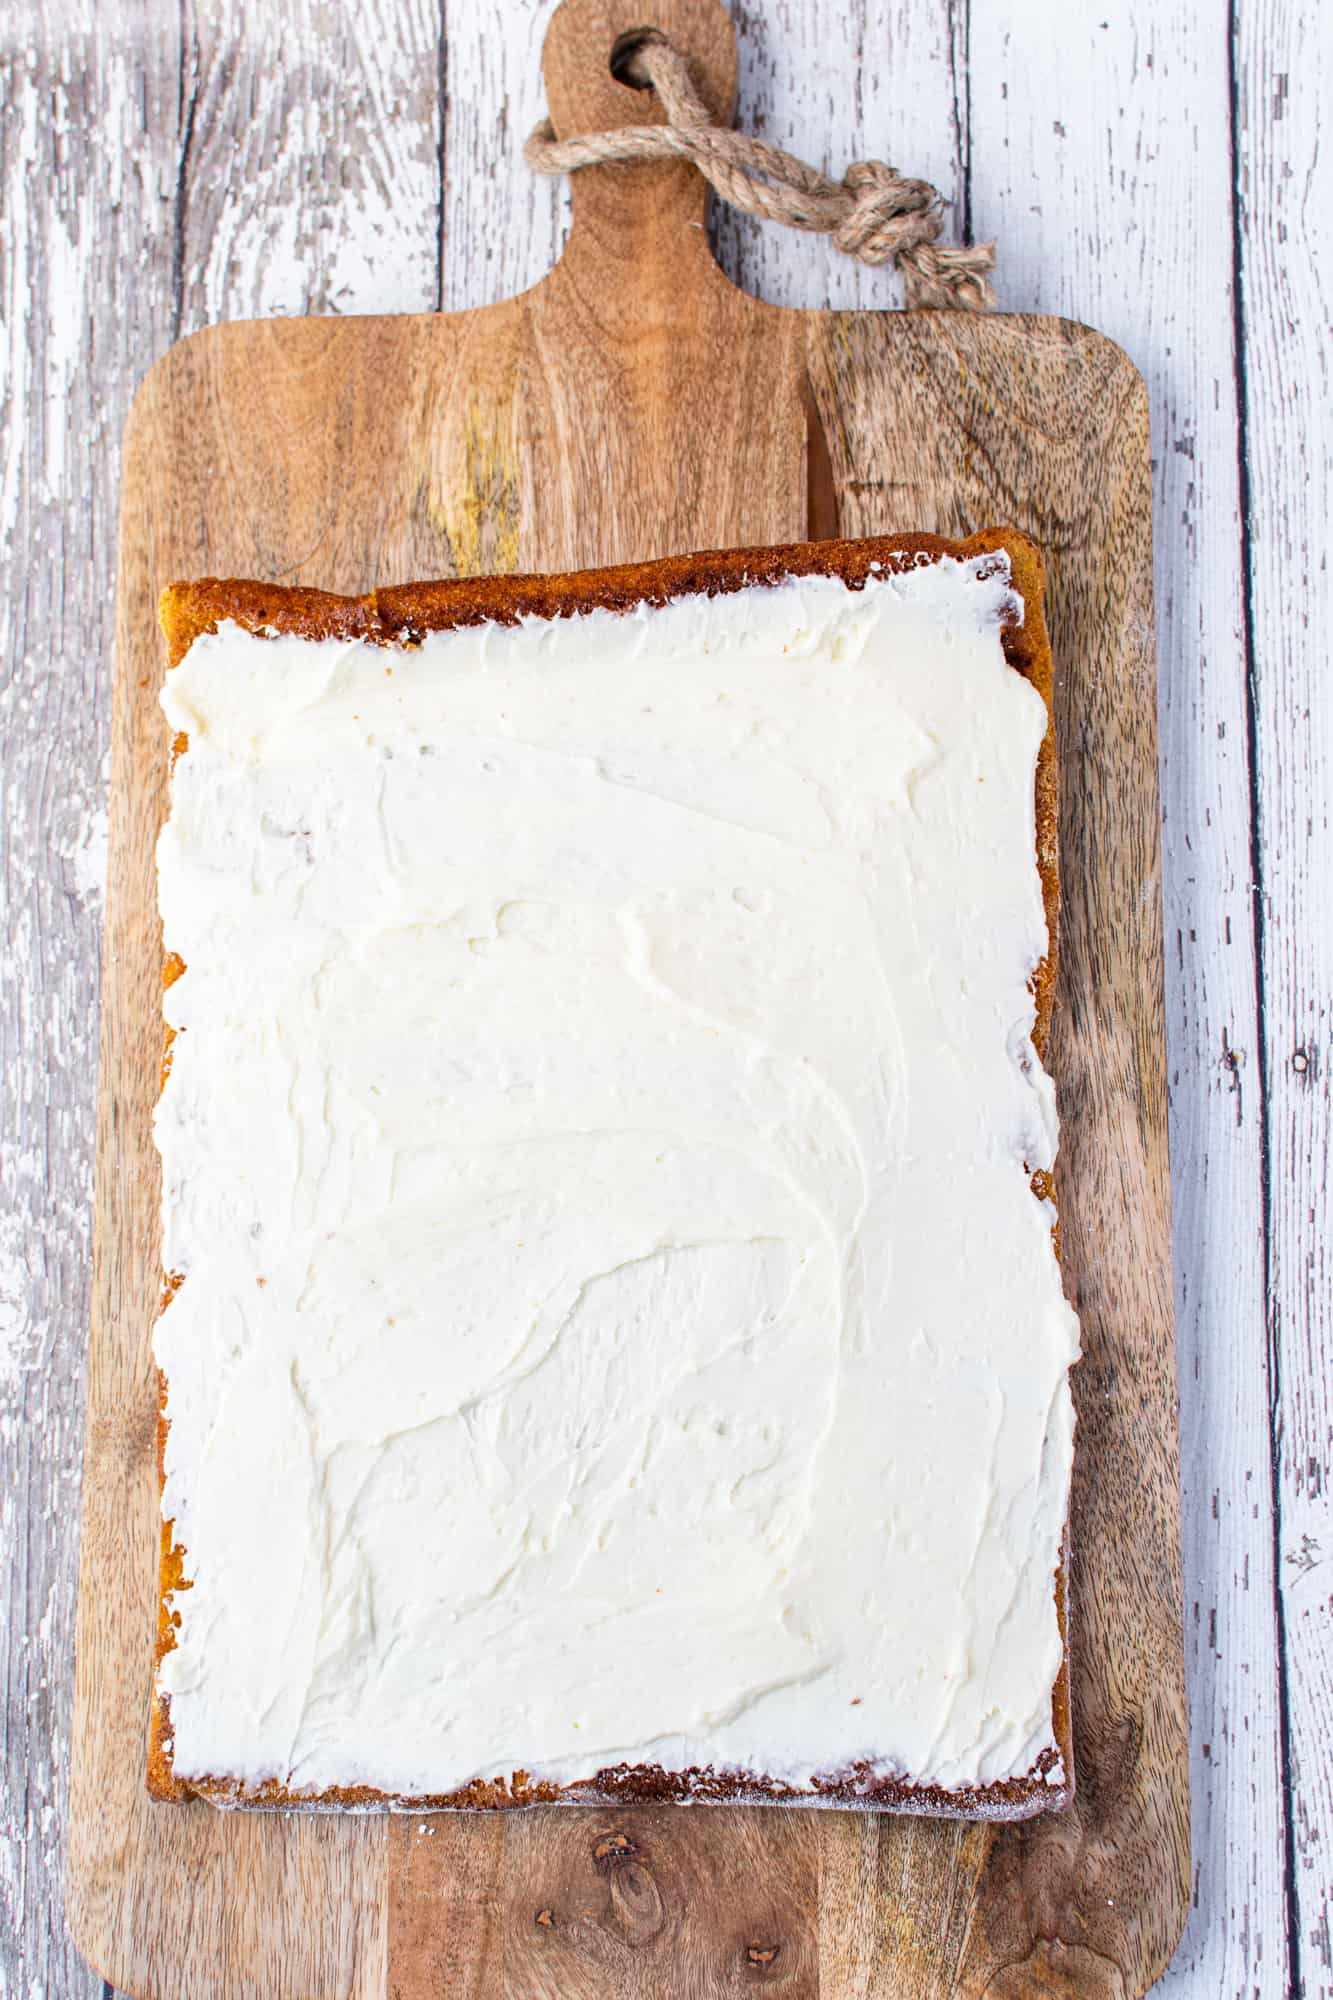 sweetened cream cheese filling spread onto the pumpkin cake.